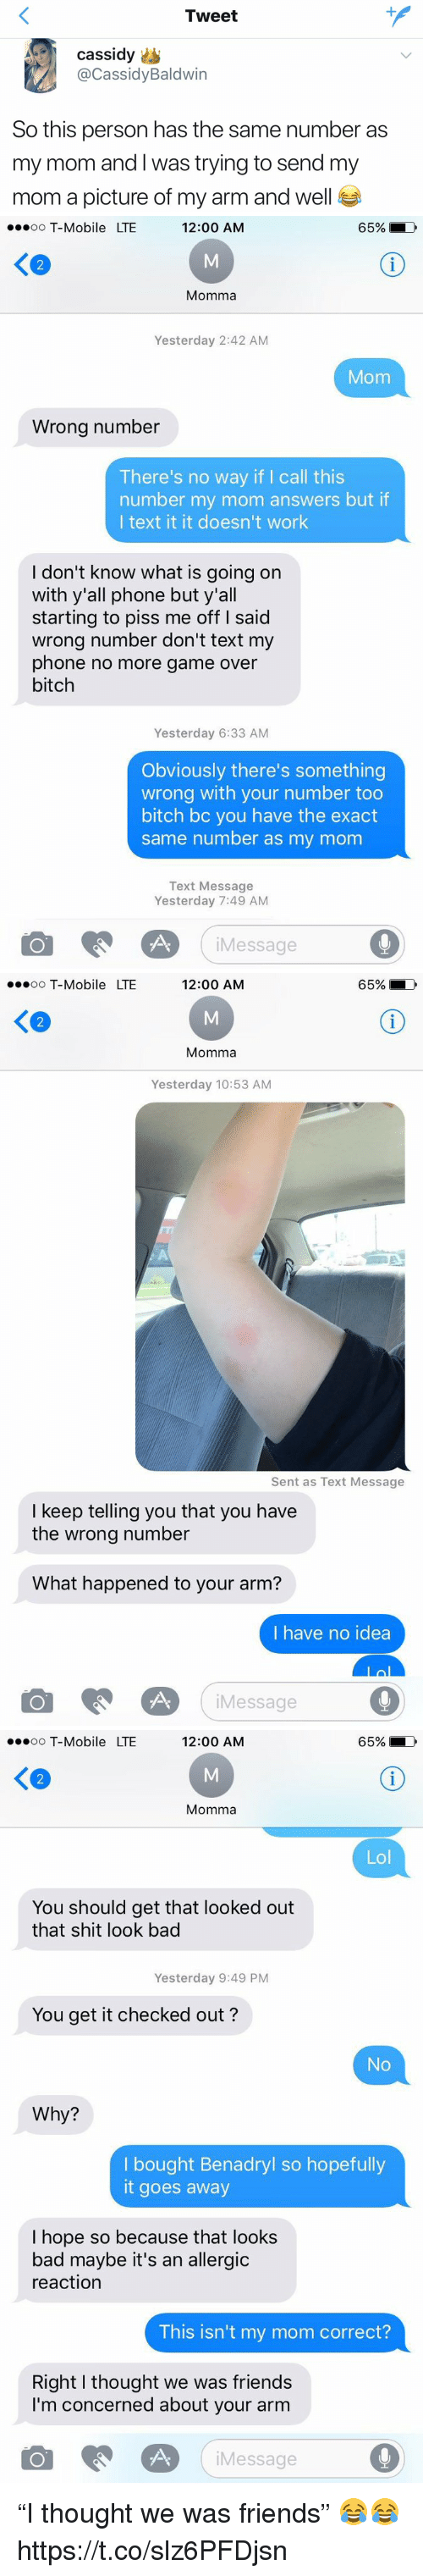 "Bad, Benadryl, and Bitch: Tweet  Cassidy  @CassidyBaldwin  So this person has the same number as  my mom and I was trying to send my  mom a picture of my arm and well   o T-Mobile LTE  12:00 AM  65%  く@  Momma  Yesterday 2:42 AM  Mom  Wrong number  There's no way if I call this  number my mom answers but if  I text it it doesn't work  I don't know what is going on  with y'all phone but y'all  starting to piss me off I said  wrong number don't text my  phone no more game over  bitch  Yesterday 6:33 AM  Obviously there's something  wrong with your number too  bitch bc you have the exact  same number as my mom  Text Message  Yesterday 7:49 AM  Message   oo T-Mobile LTE  12:00 AM  65%)  Ke  2  Momma  Yesterday 10:53 AM  Sent as Text Message  I keep telling you that you have  the wrong number  What happened to your arm?  I have no idea  Message   oo T-Mobile LTE  12:00 AM  65%  く@  Momma  Lol  You should get that looked out  that shit look bad  Yesterday 9:49 PM  You get it checked out?  No  Why?  I bought Benadryl so hopefully  it goes away  I hope so because that look:s  bad maybe it's an allergic  reactiorn  This isn't my mom correct?  Right I thought we was friends  I'm concerned about your arm  Message ""I thought we was friends"" 😂😂 https://t.co/slz6PFDjsn"